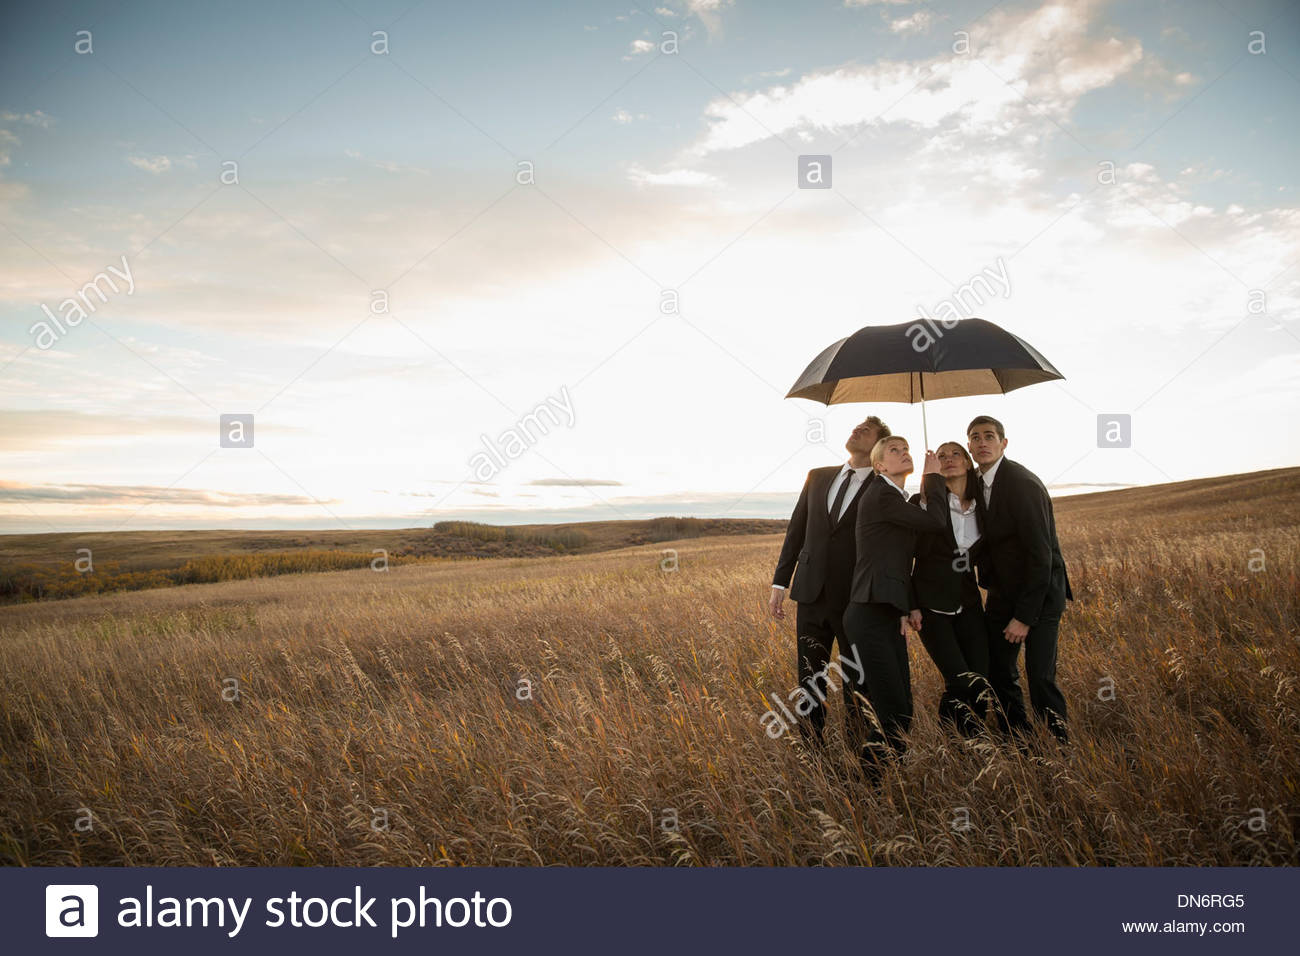 Business people standing under umbrella on field - Stock Image